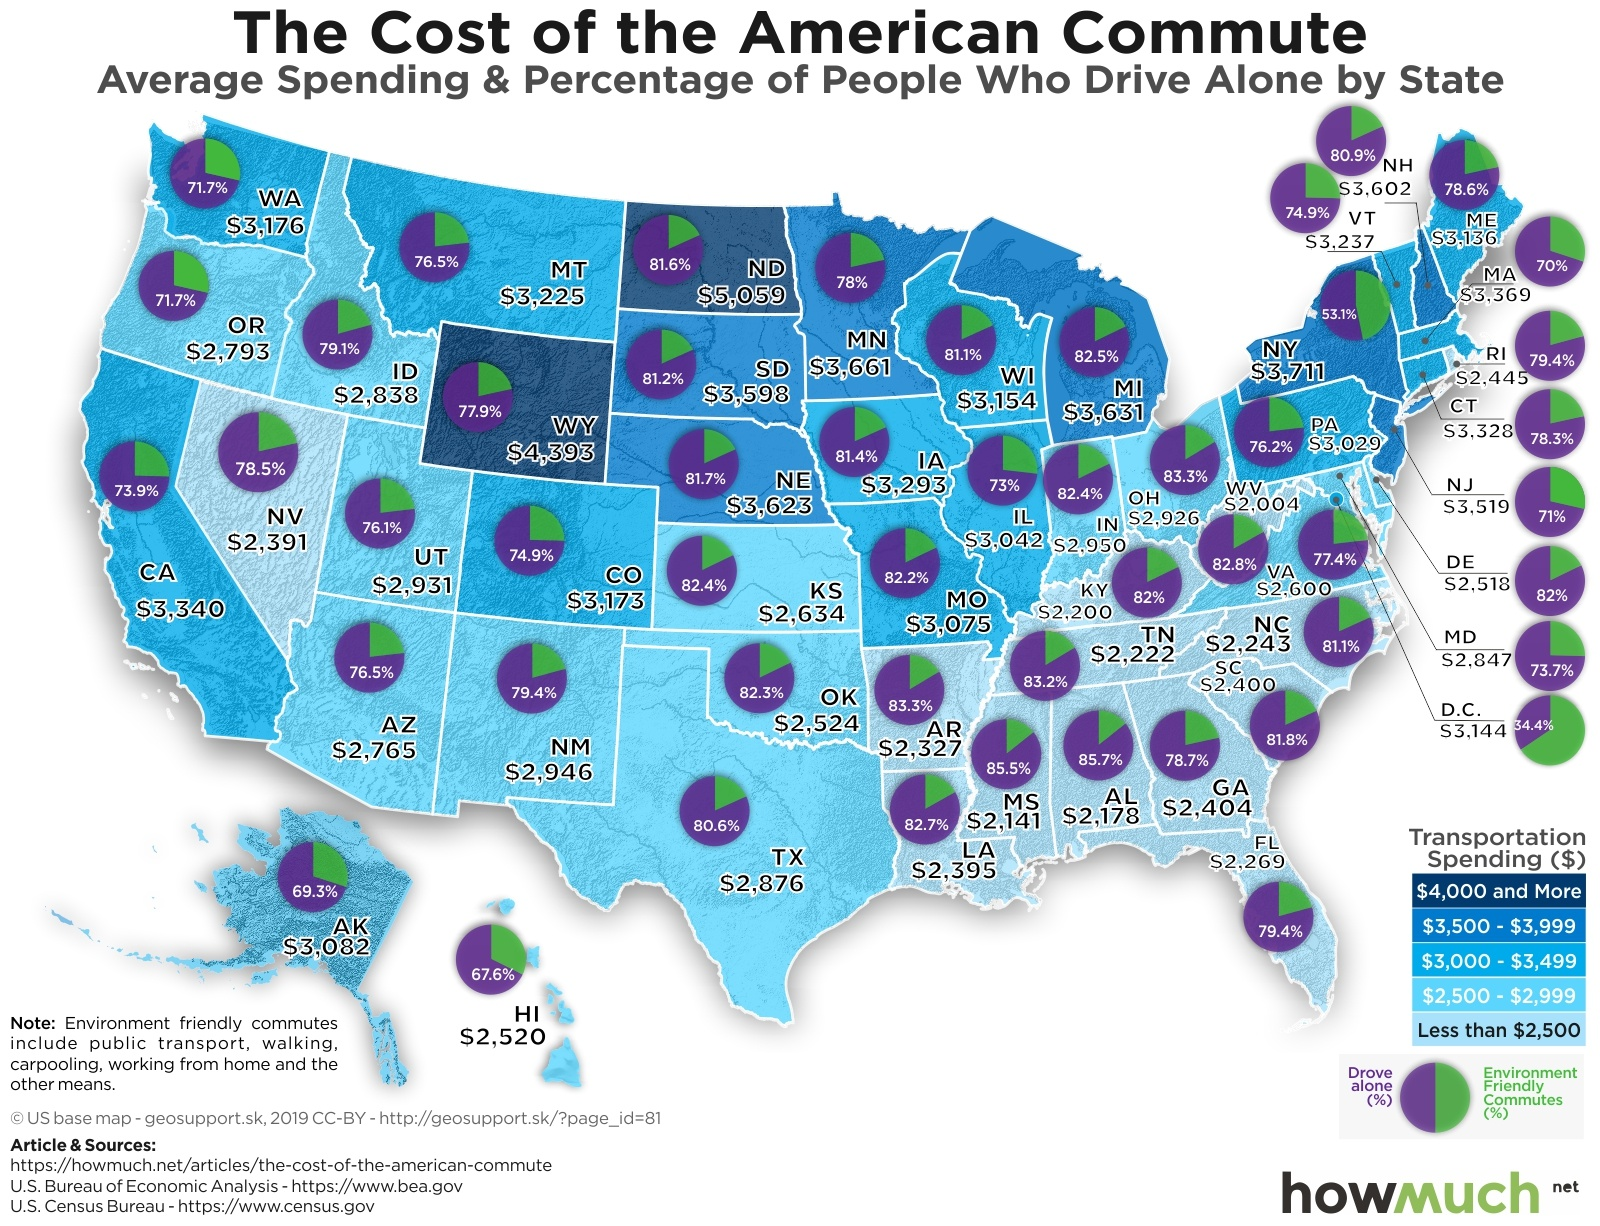 How Much Does the Average American Spend on Transportation?